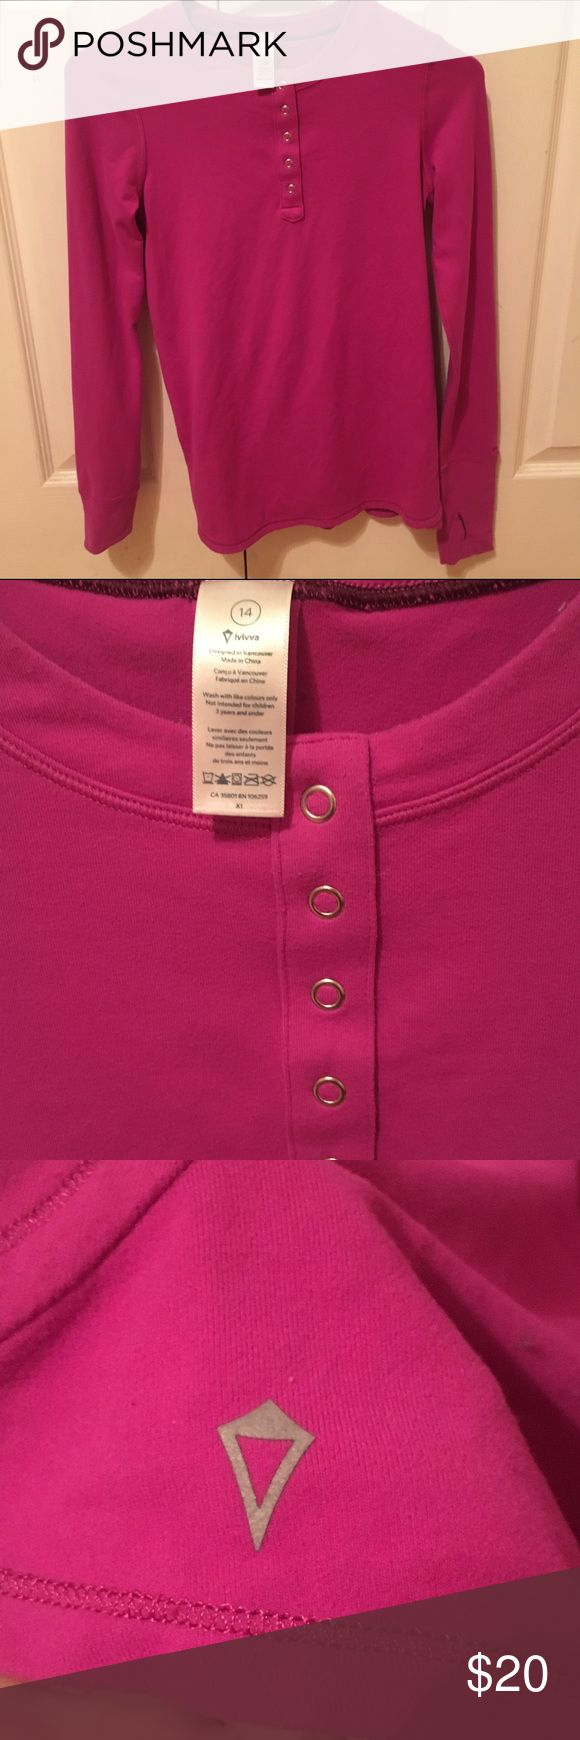 Ivivva Purple Half Button Shirt Purple half button up shirt by ivivva a kid brand by Lululemoon. Super cute half button purple shirt. Perfect for winter and sports. Martial is super stretchy. Can fit a petite woman. Free to leave questions or make offers down below. 🙂 Ivivva Shirts & Tops Tees - Long Sleeve